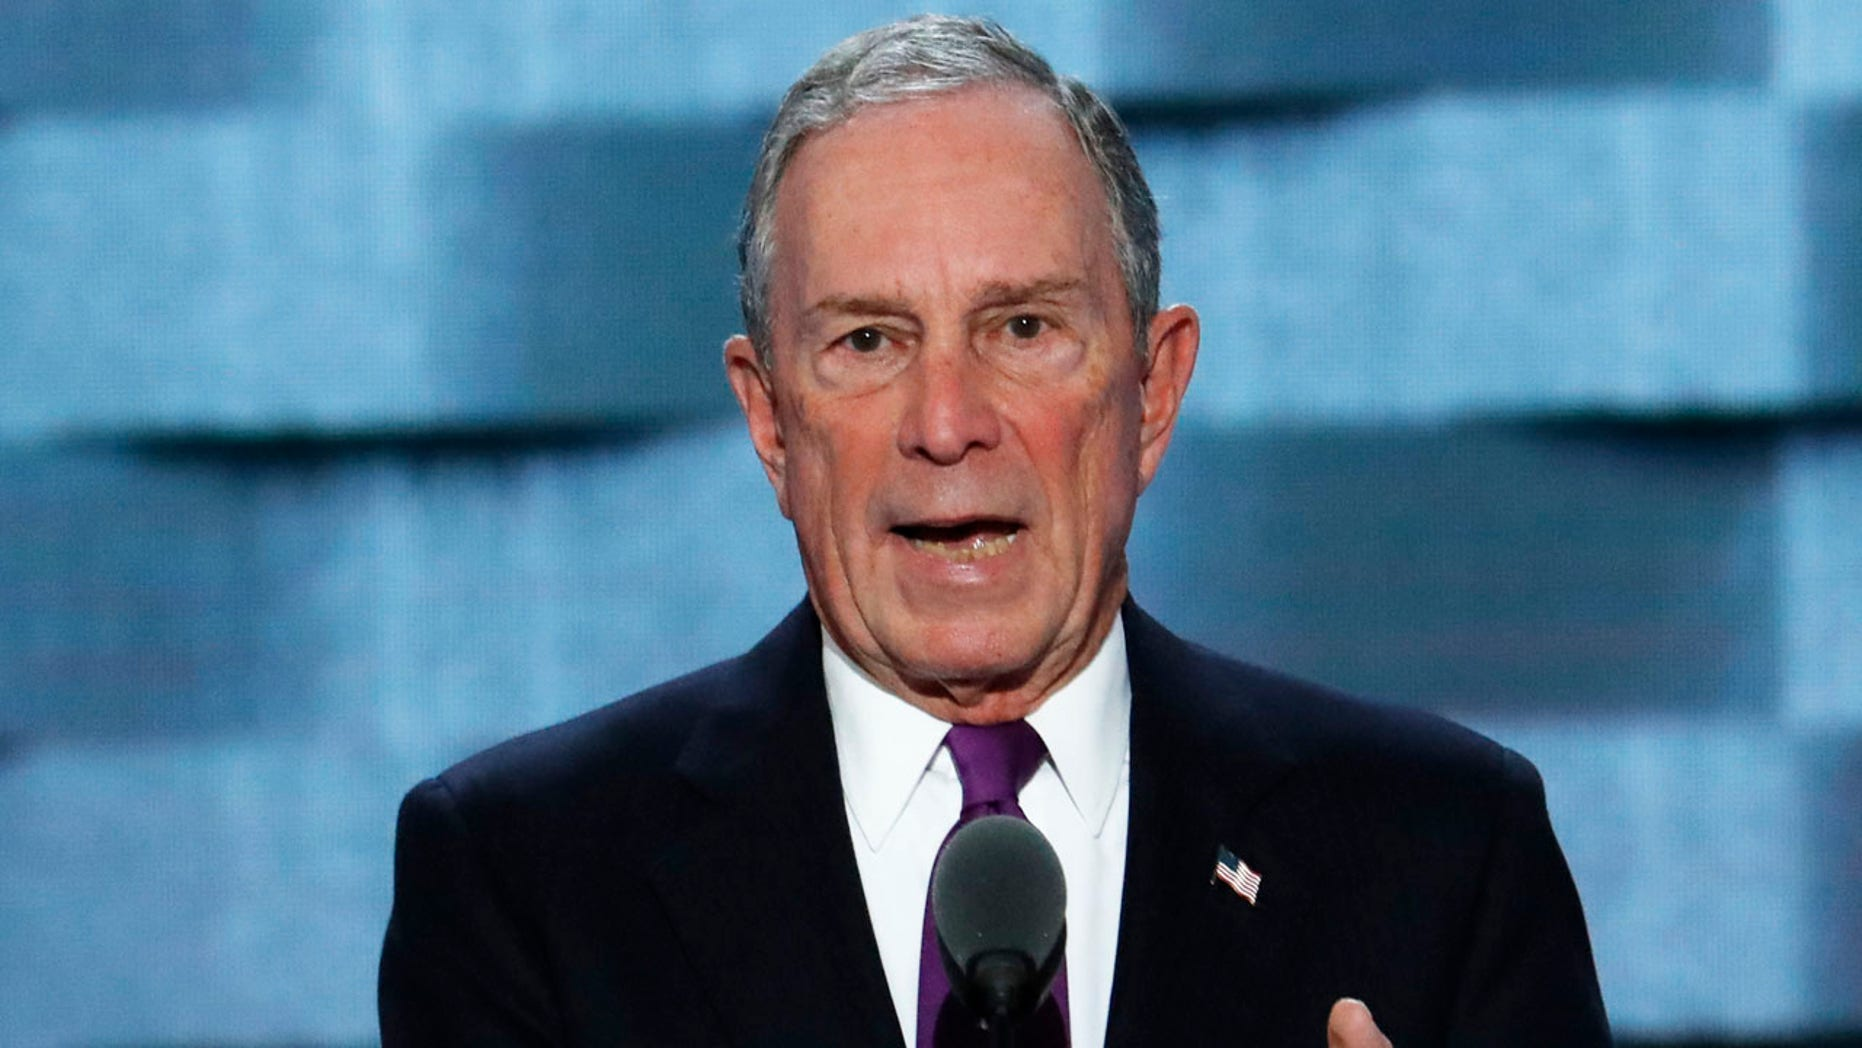 FILE - In this Wednesday, July 27, 2016, file photo, former New York City Mayor Michael Bloomberg speaks during the third day of the Democratic National Convention in Philadelphia.